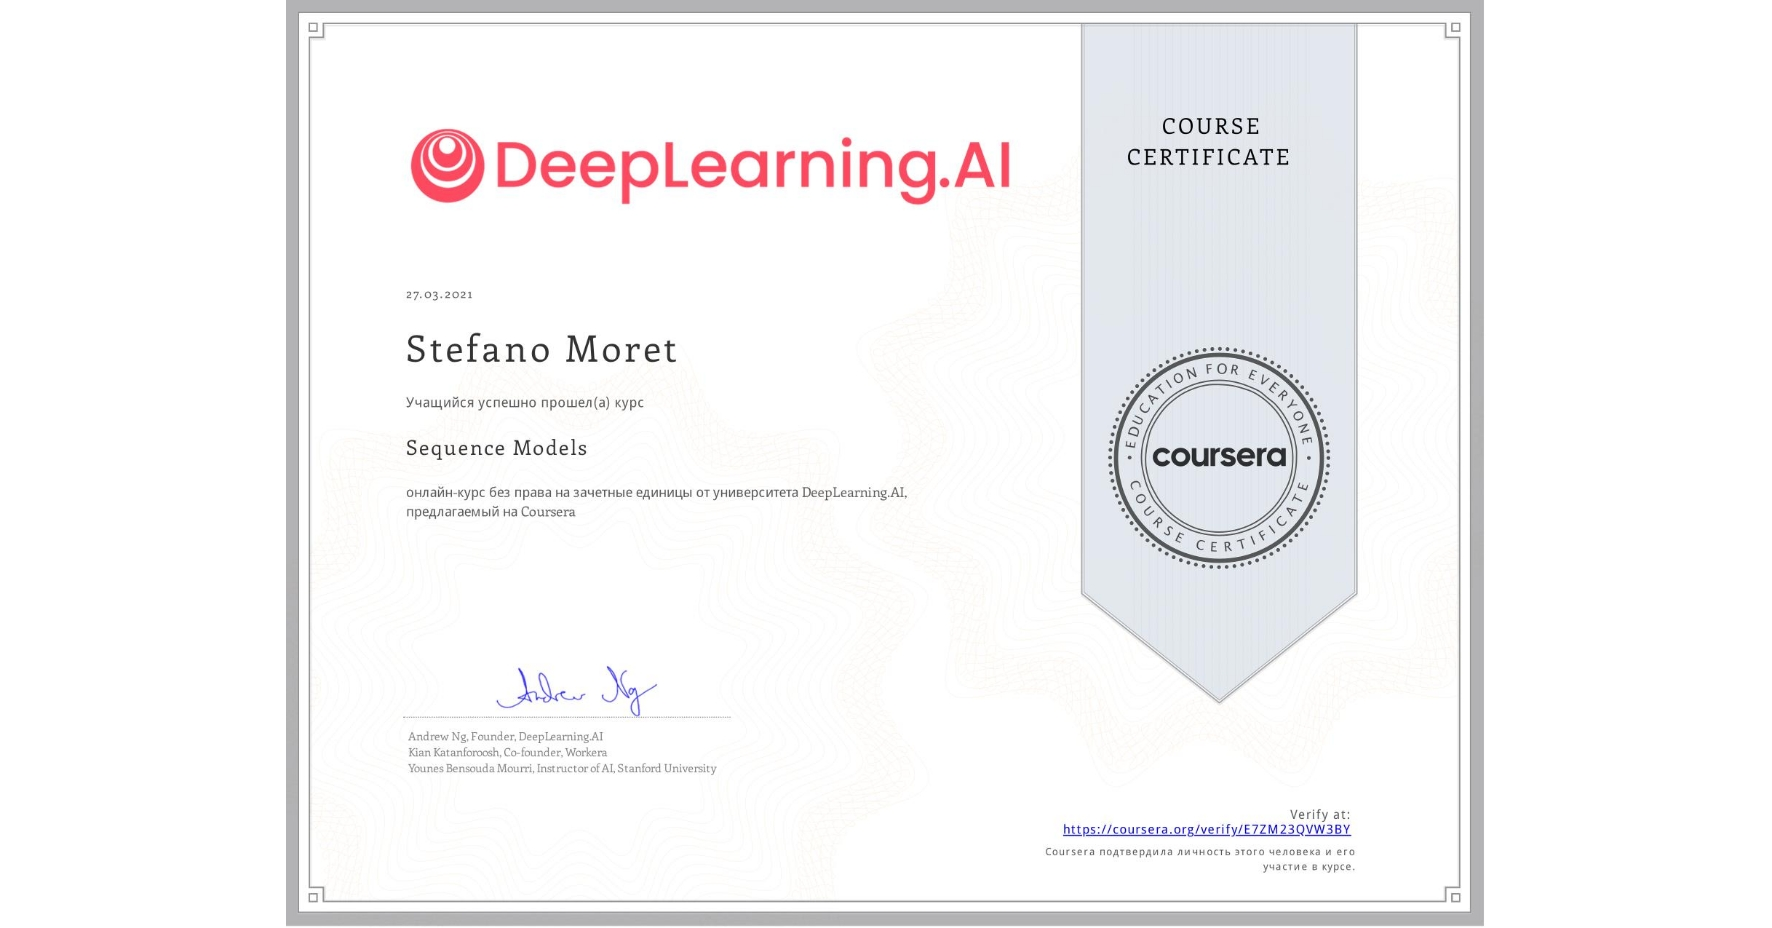 View certificate for Stefano Moret, Sequence Models, an online non-credit course authorized by DeepLearning.AI and offered through Coursera